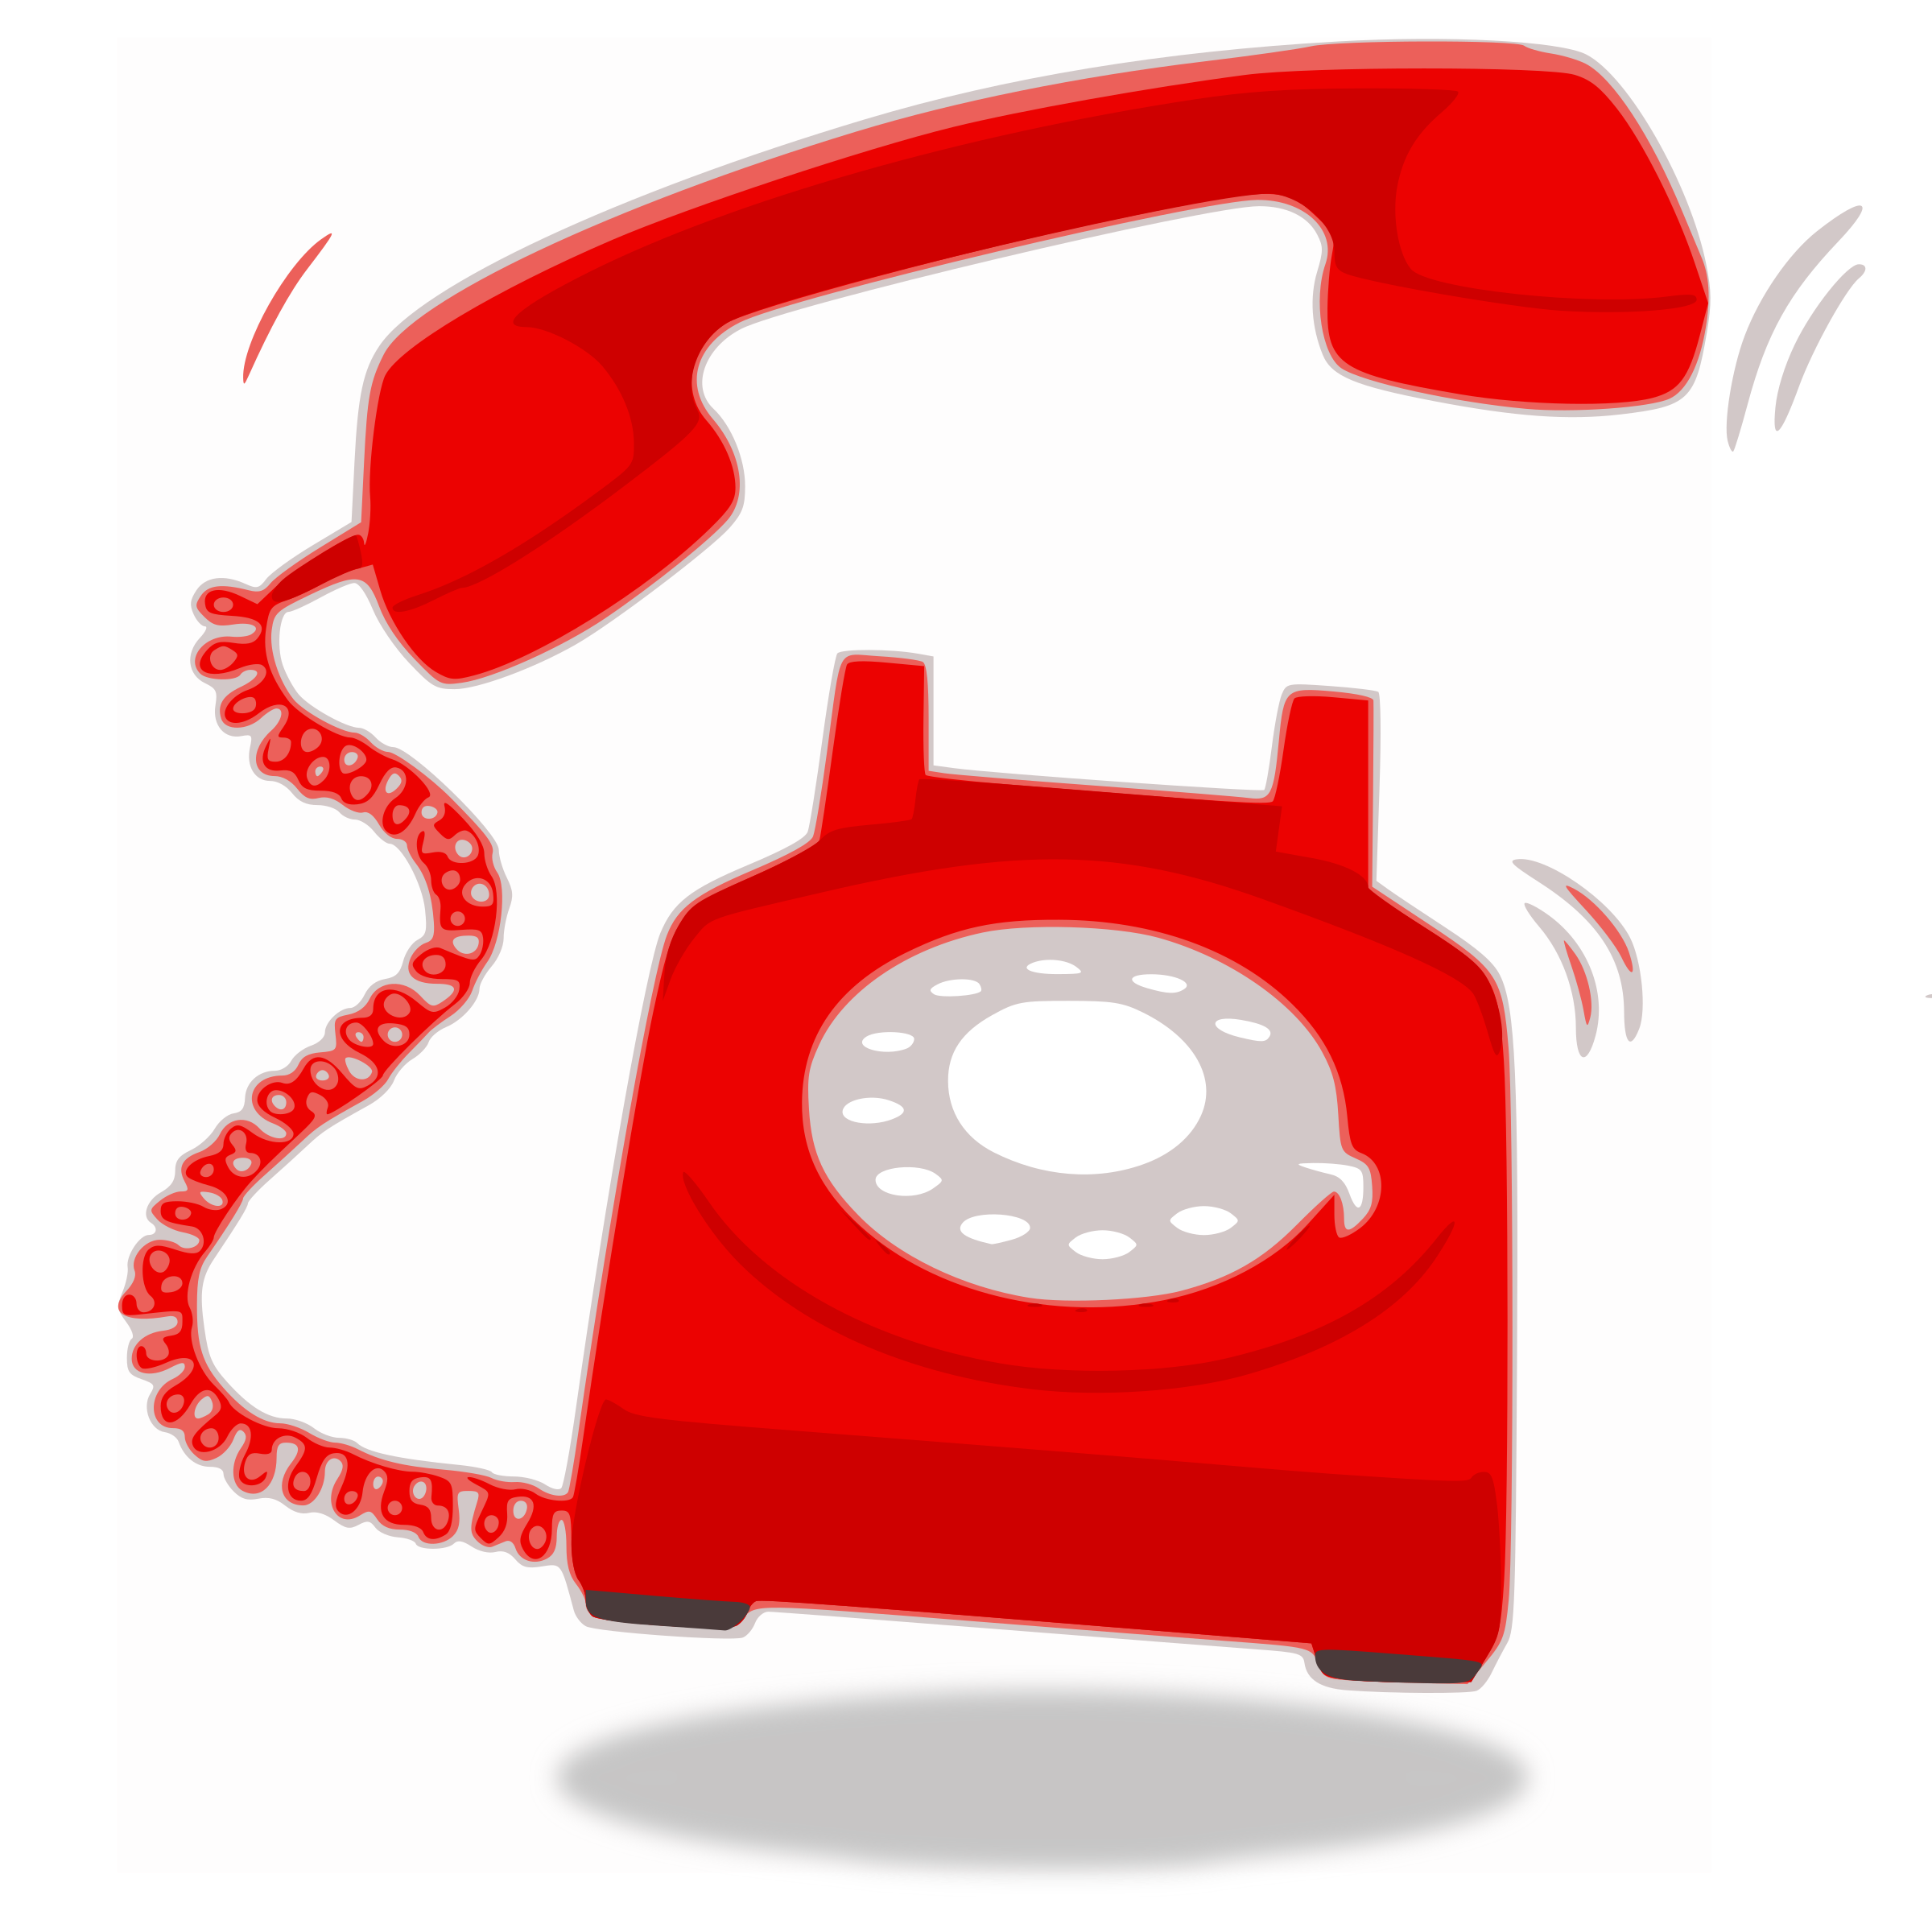 Telephon big image png. Telephone clipart red telephone